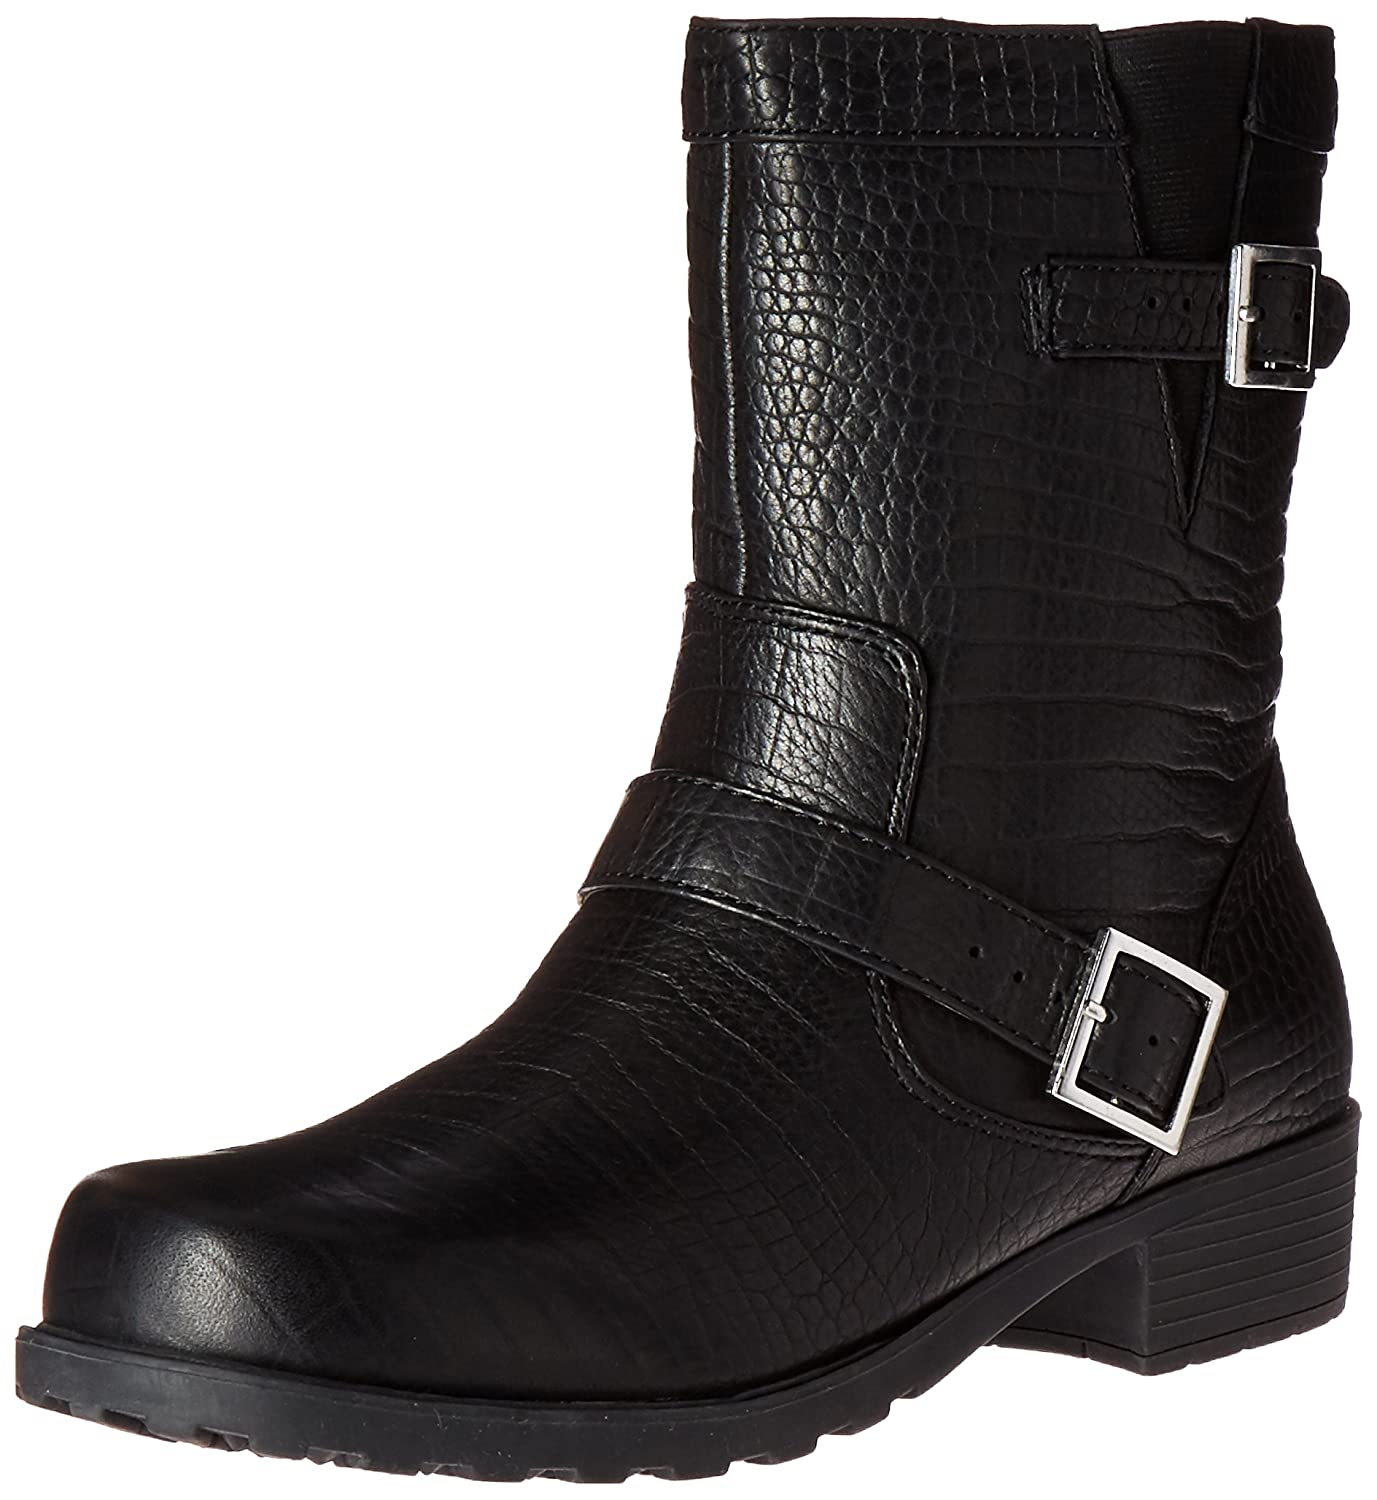 SoftWalk Women's Bellville Boot B00HQRFMJ4 6.5 N US|Black Lizard